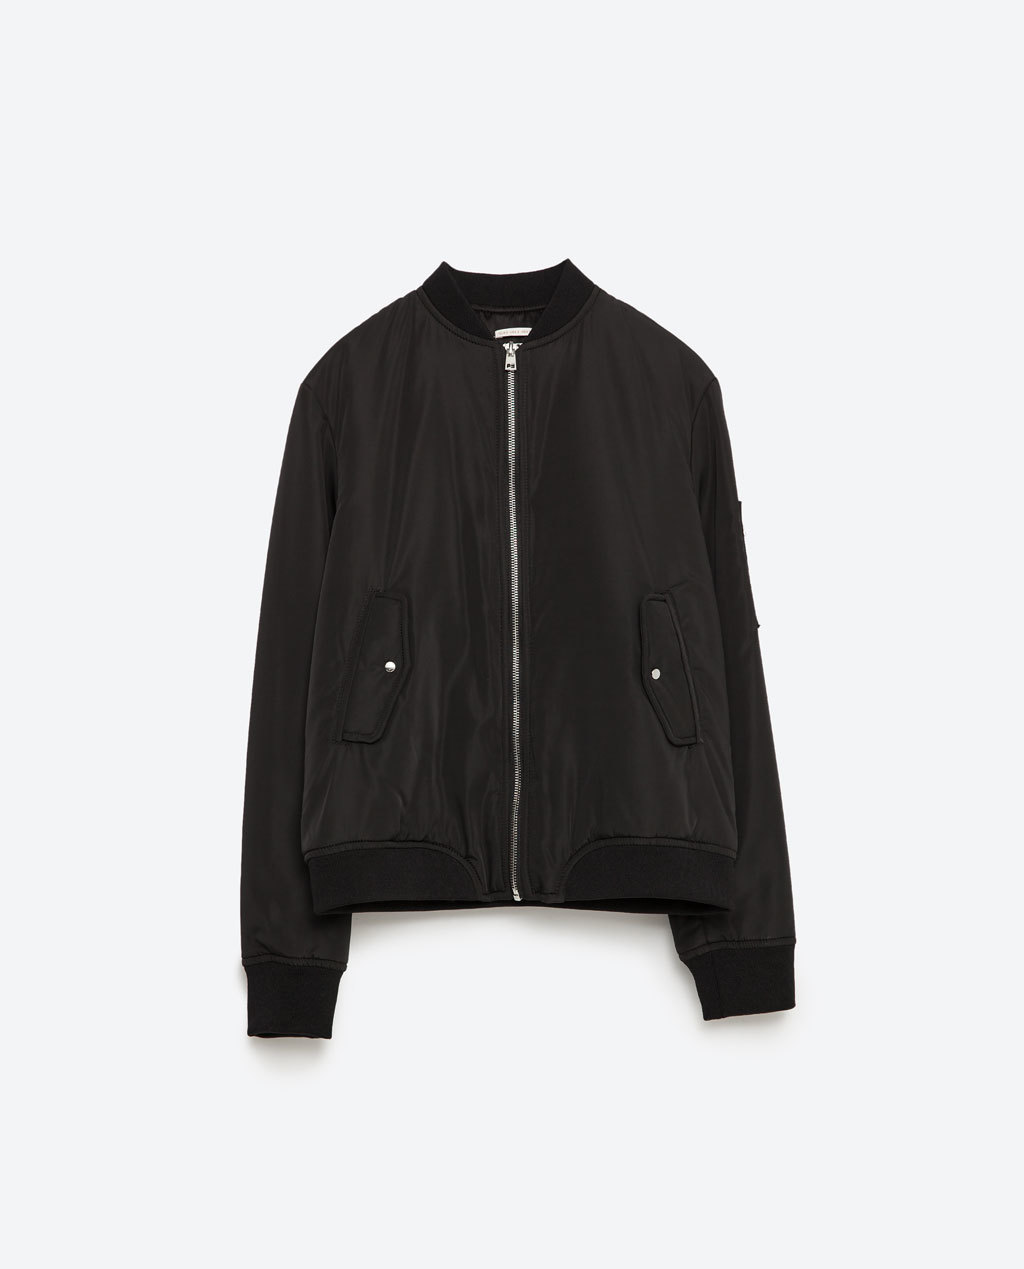 Nylon Bomber Jacket - pattern: plain; collar: round collar/collarless; style: bomber; predominant colour: black; occasions: casual; length: standard; fit: straight cut (boxy); fibres: polyester/polyamide - 100%; sleeve length: long sleeve; sleeve style: standard; collar break: high; pattern type: fabric; texture group: other - light to midweight; season: s/s 2016